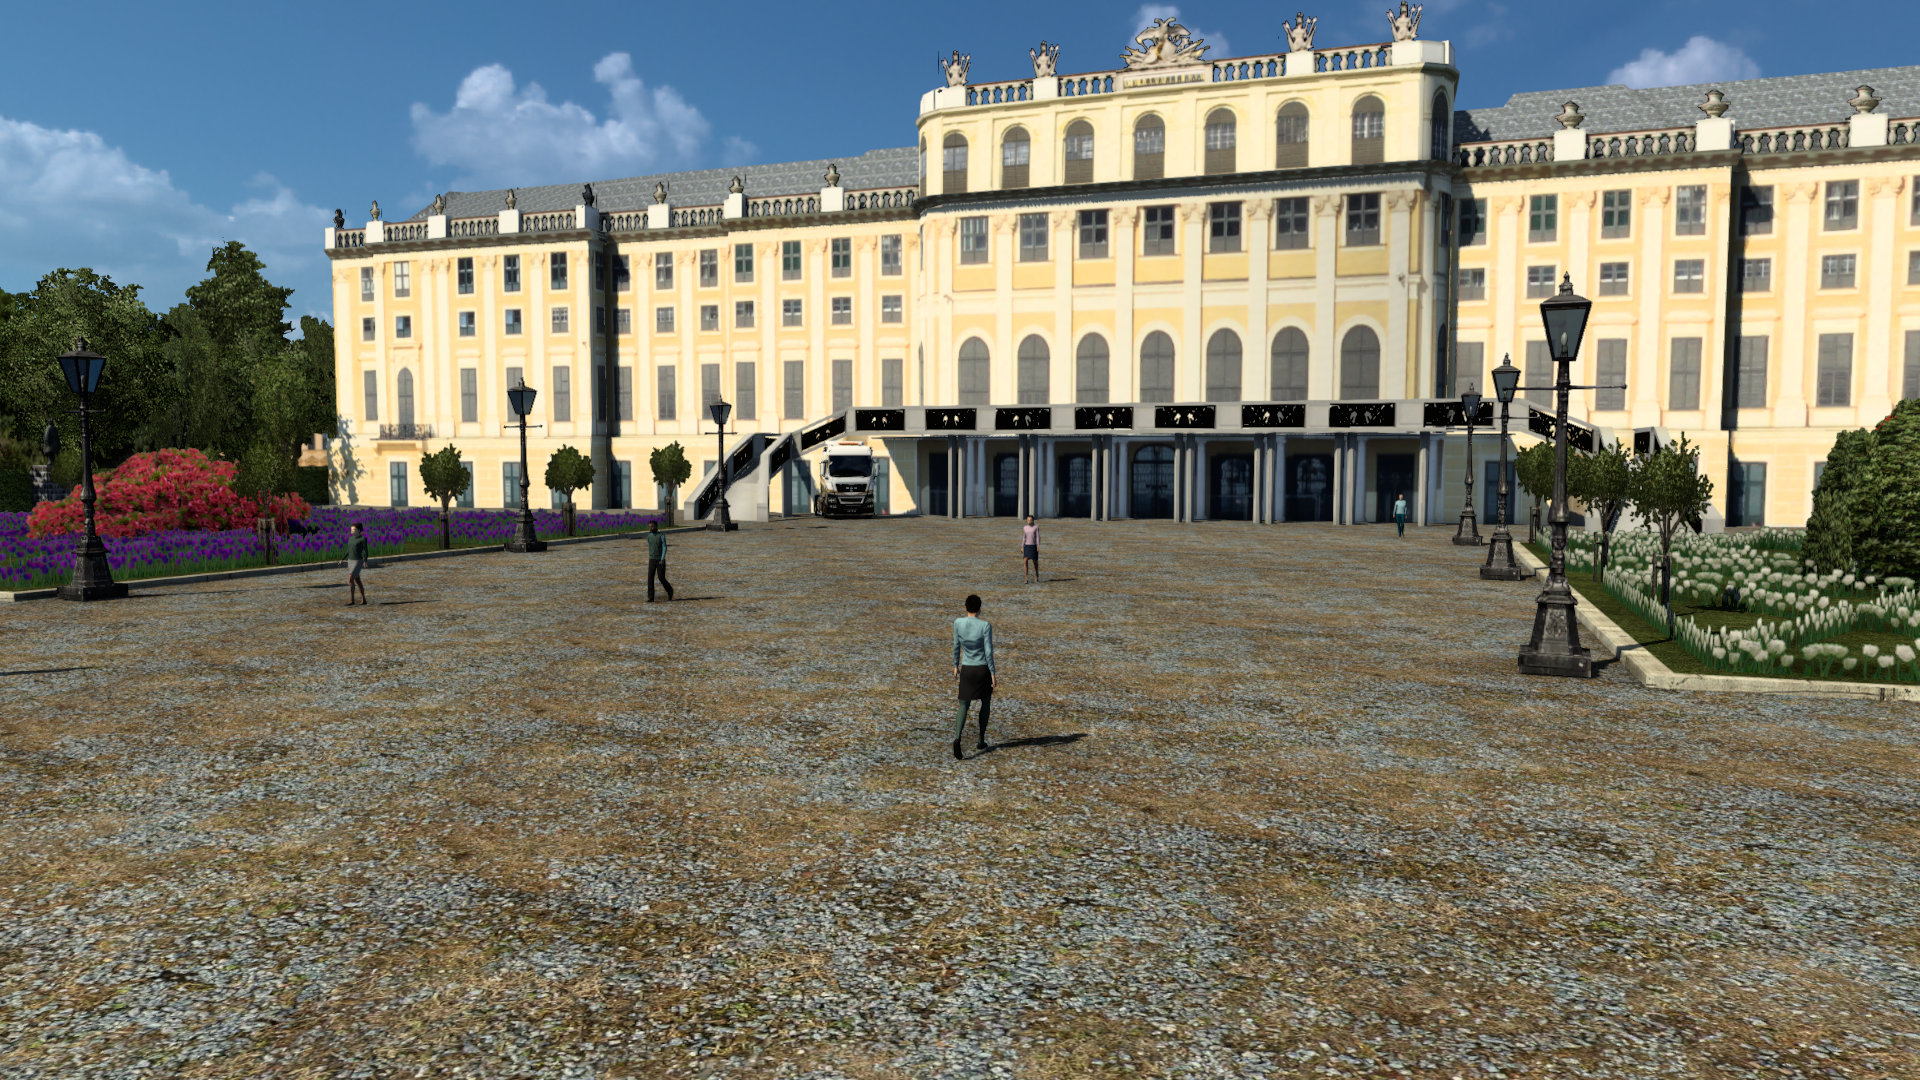 ets2_20210826_005512_00.png